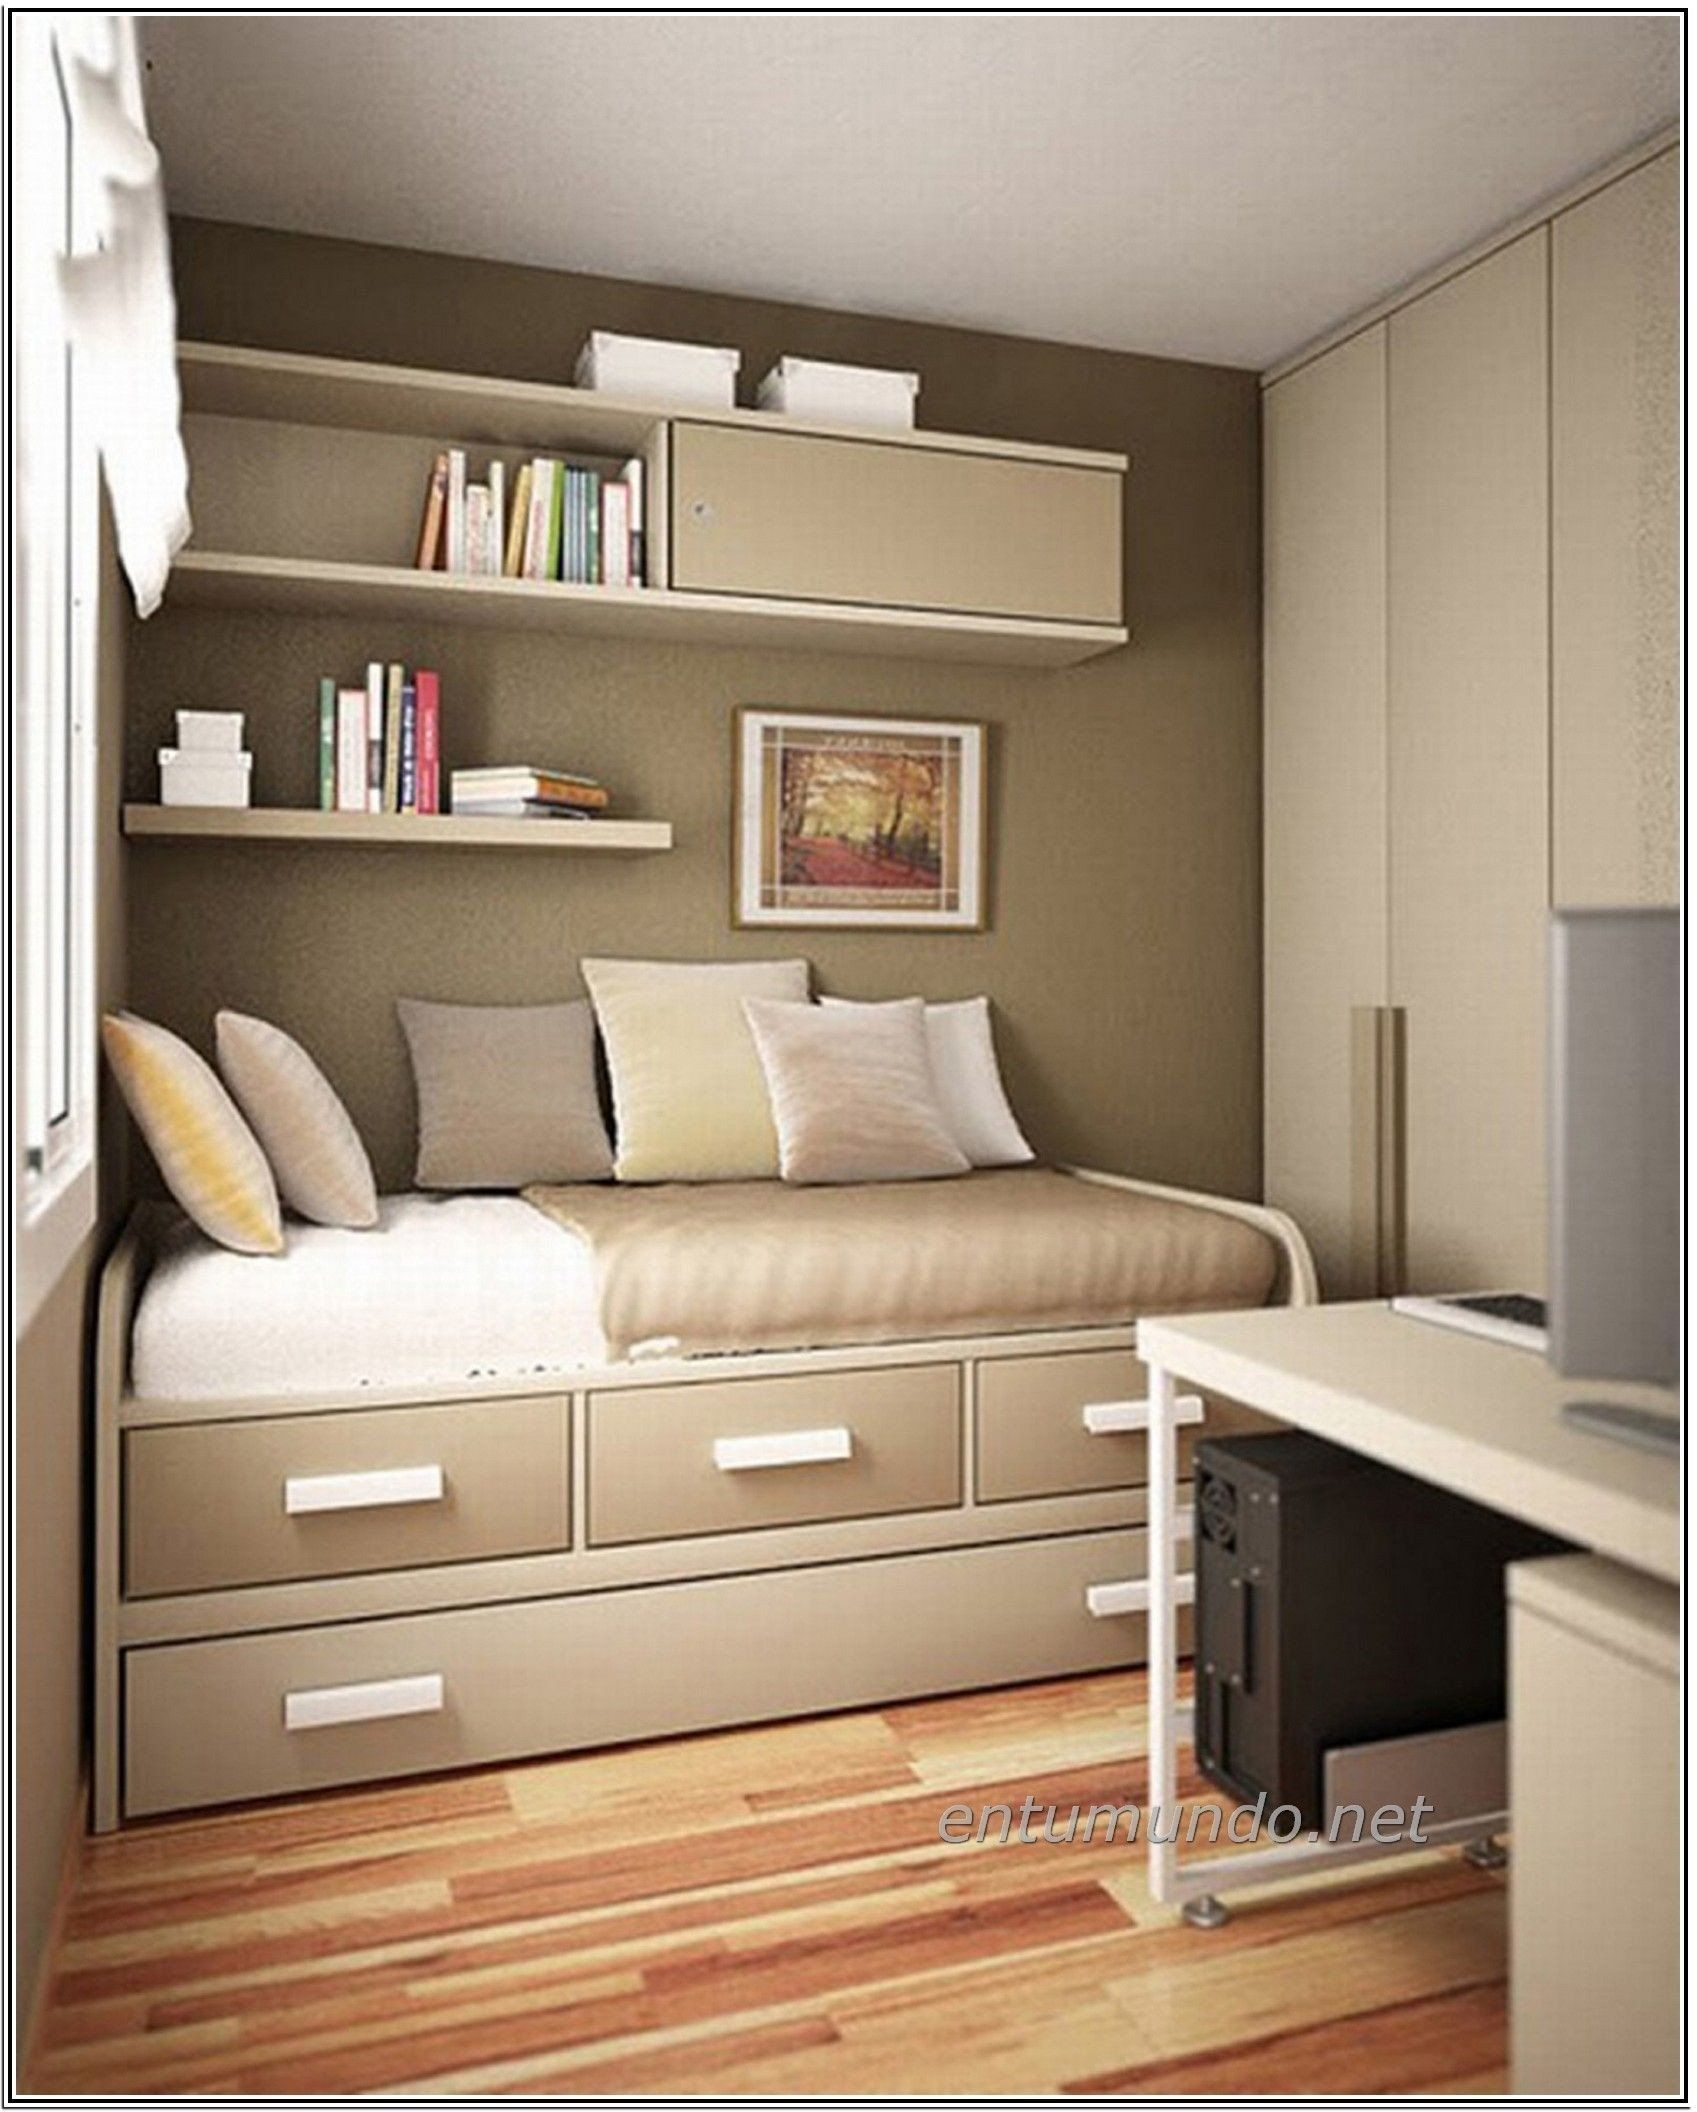 Master Bedroom Design for Small Space Inspirational Space Saving Ideas for  Master Bedroom in 2020 | Small space bedroom, Small bedroom decor, Small  apartment bedrooms